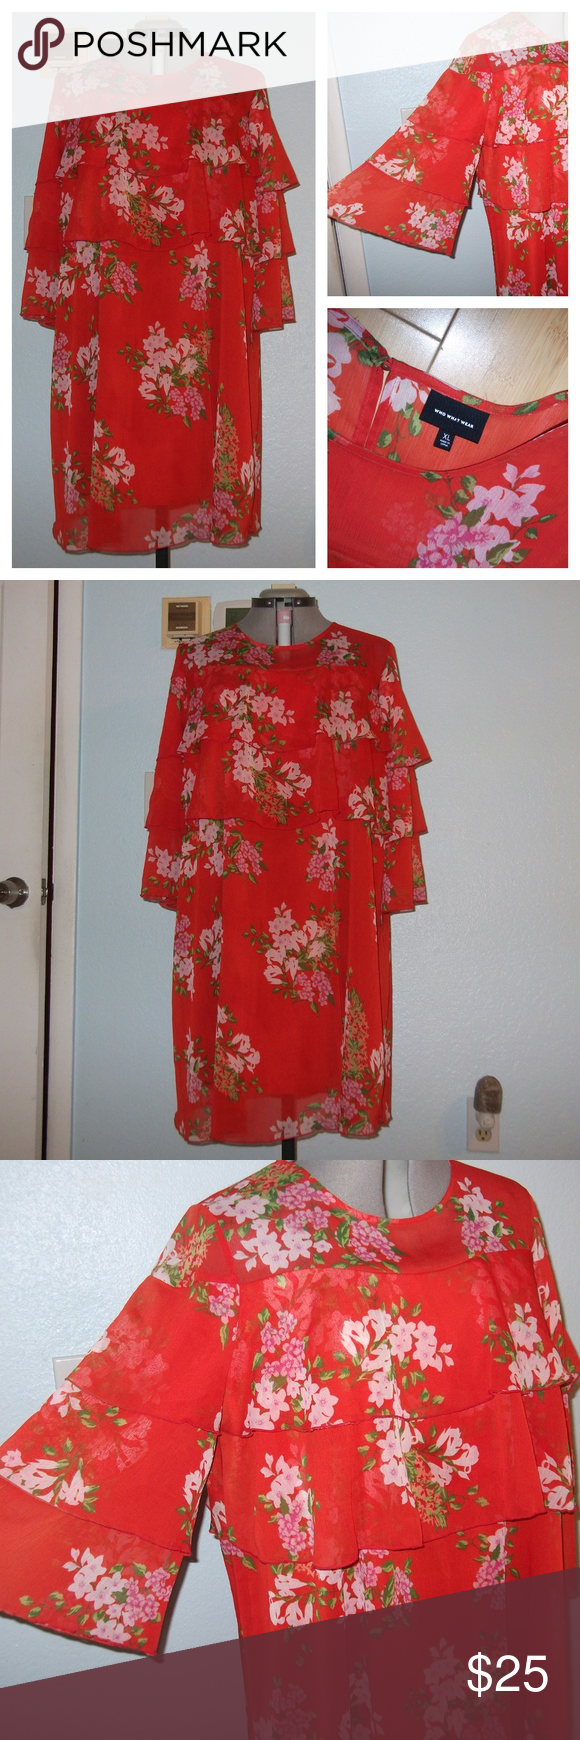 Who What Wear Size Xl Orange Floral Layered Dress Who What Wear How To Wear Clothes Design [ 1740 x 580 Pixel ]